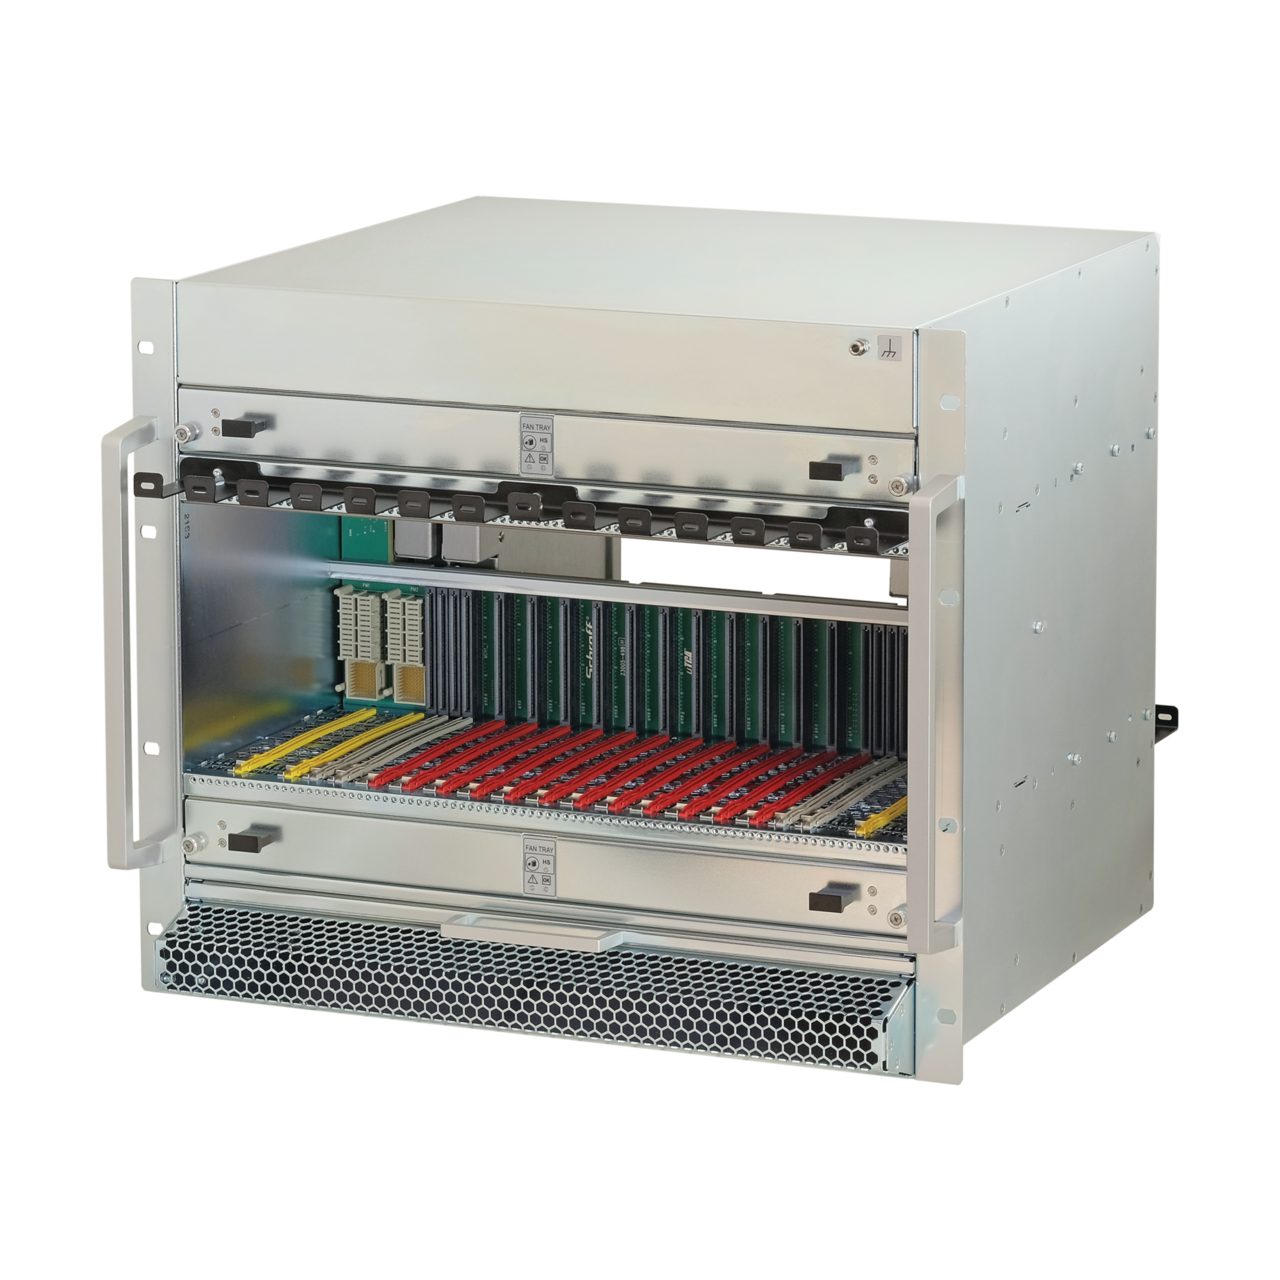 Image for MicroTCA.4 system, 9 U, 84 HP, for 12 double mid-size AMCs, White Rabbit, JSM slot from nVent SCHROFF | Europe, Middle East, Africa and India